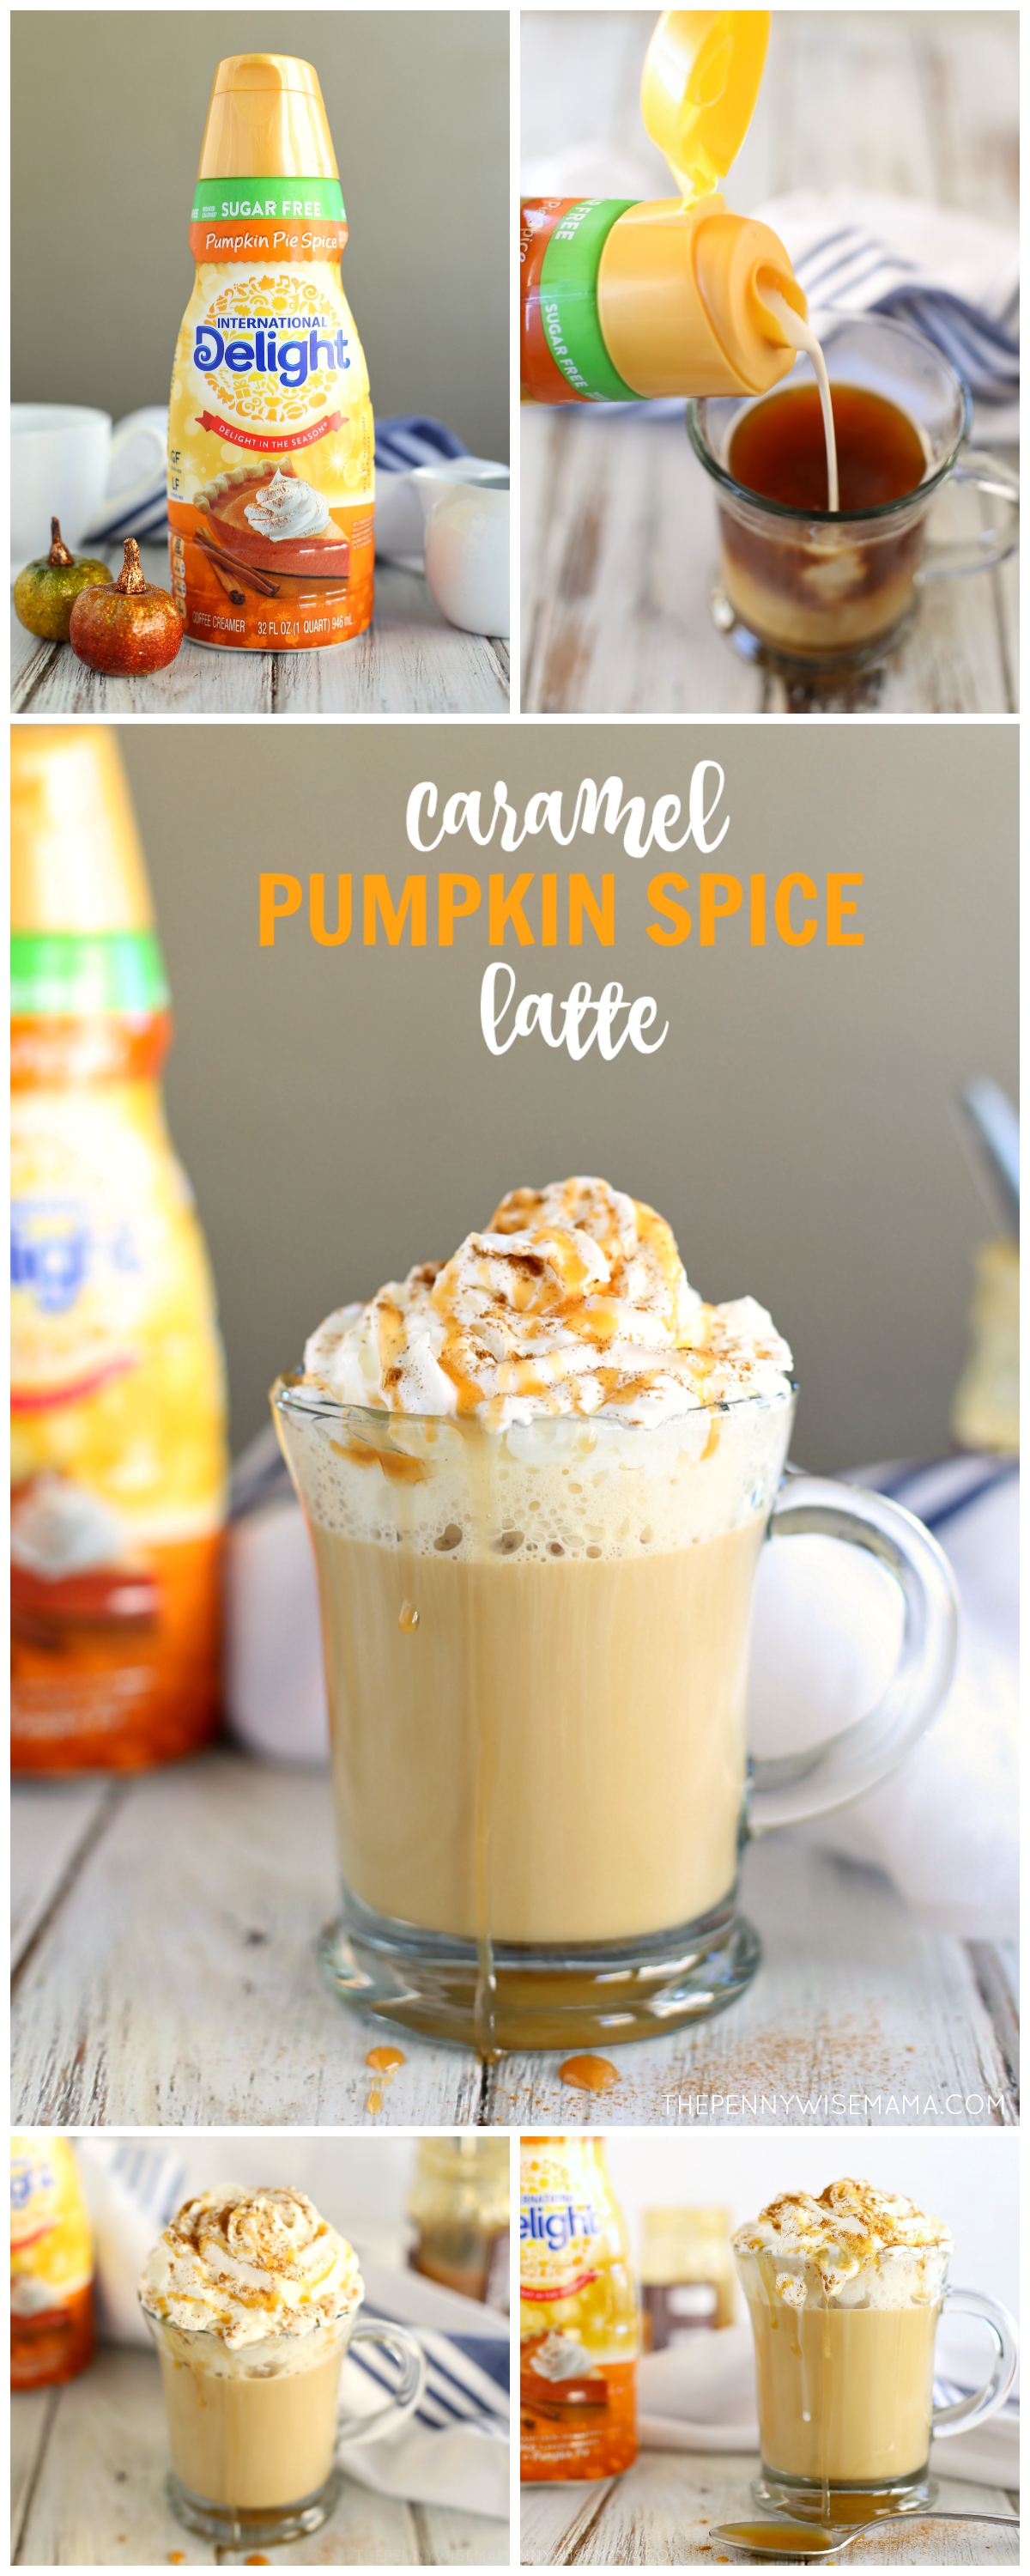 Caramel Pumpkin Spice Latte - a simple & delicious recipe that will save you money!